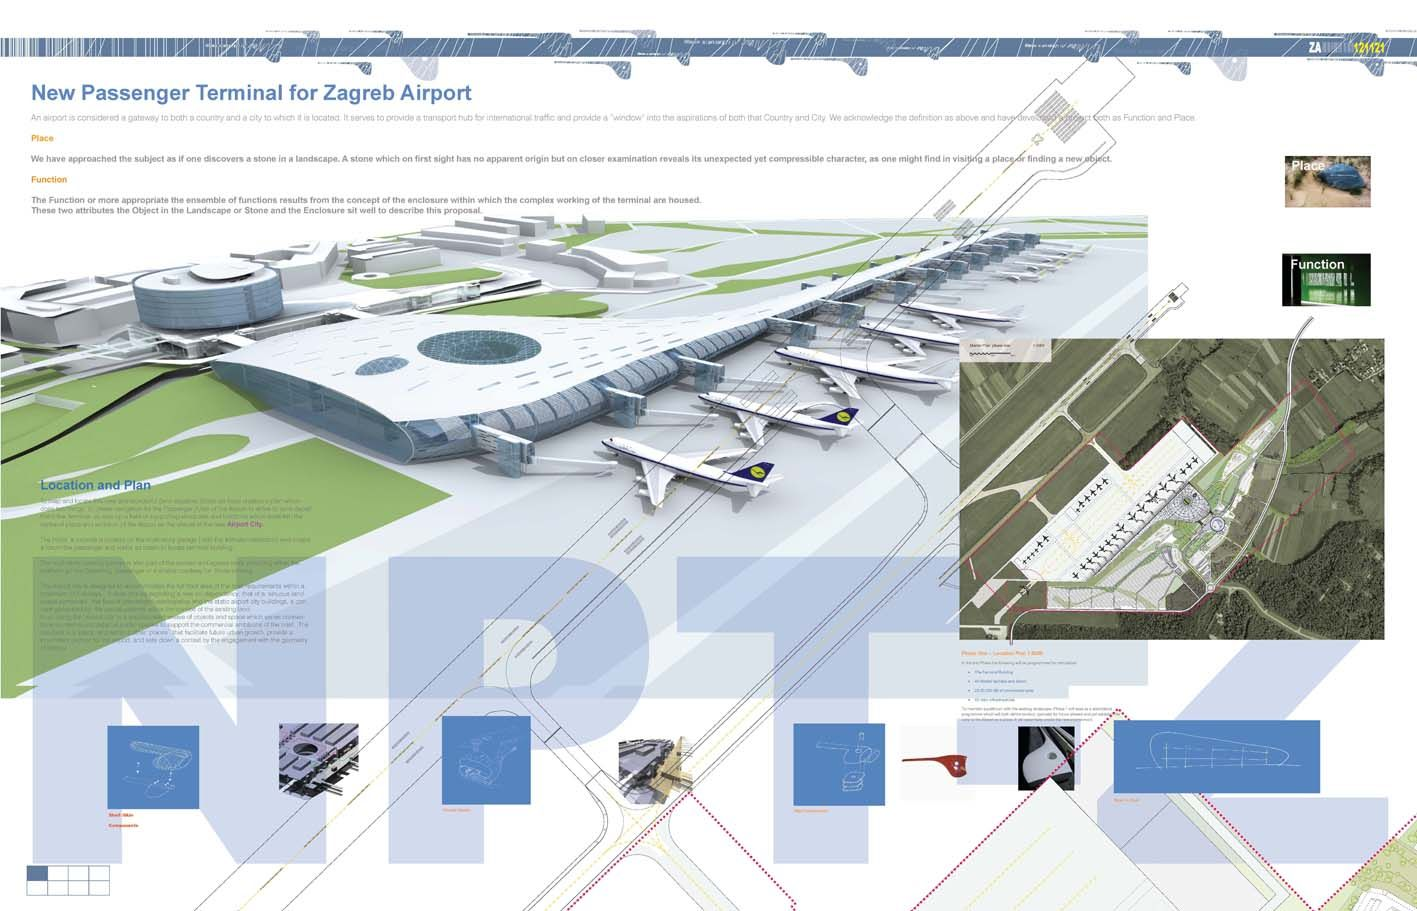 Proposal For A New Terminal At Zagreb Airport In 2020 Zagreb Airport Passenger